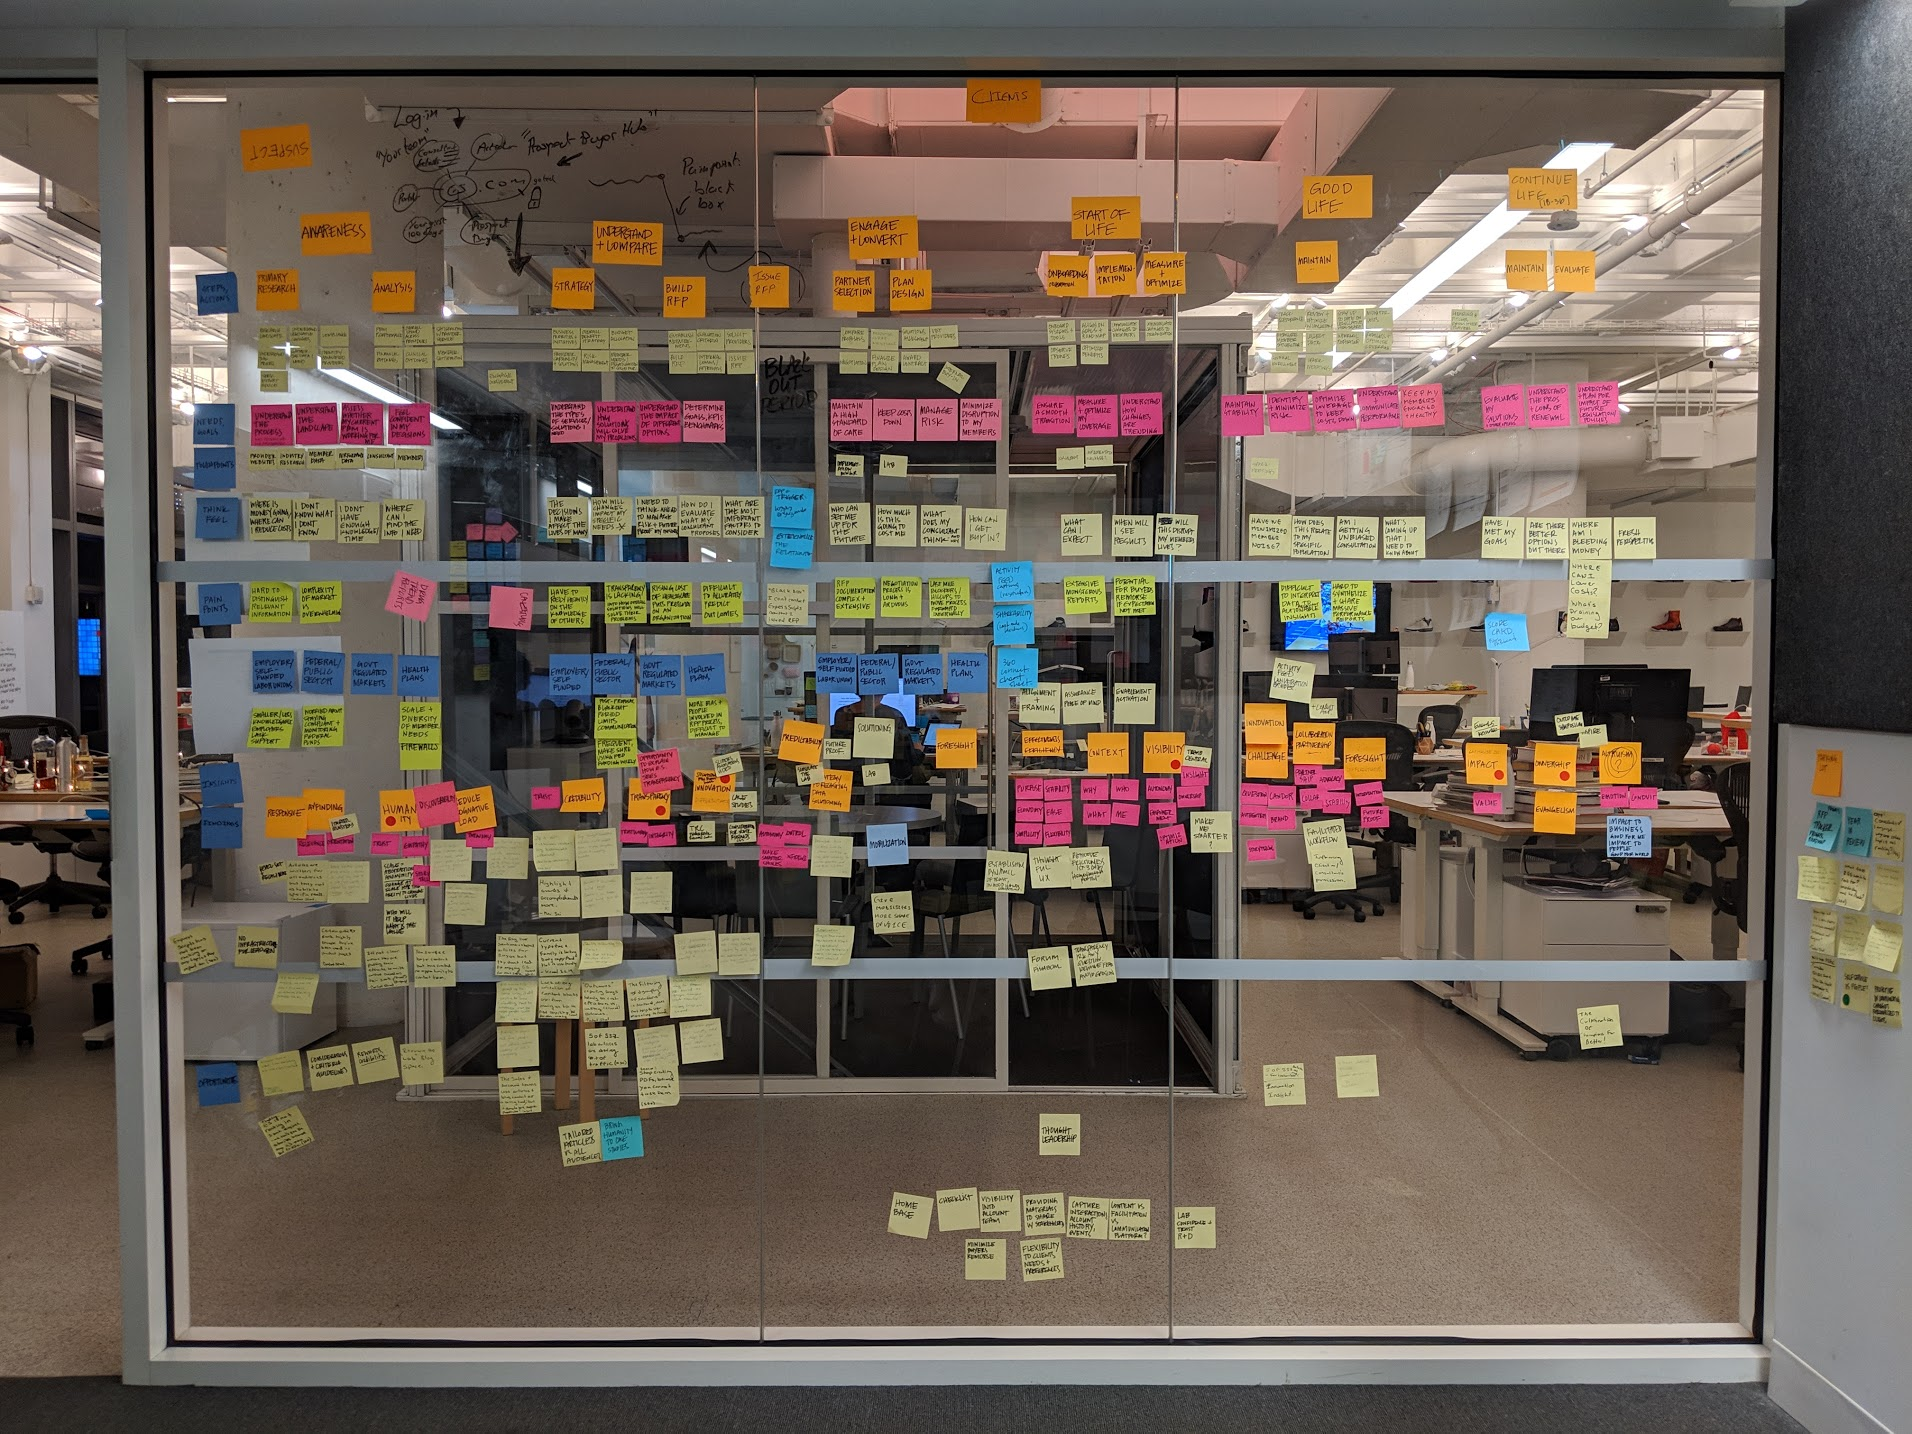 The experience map: Post-it version